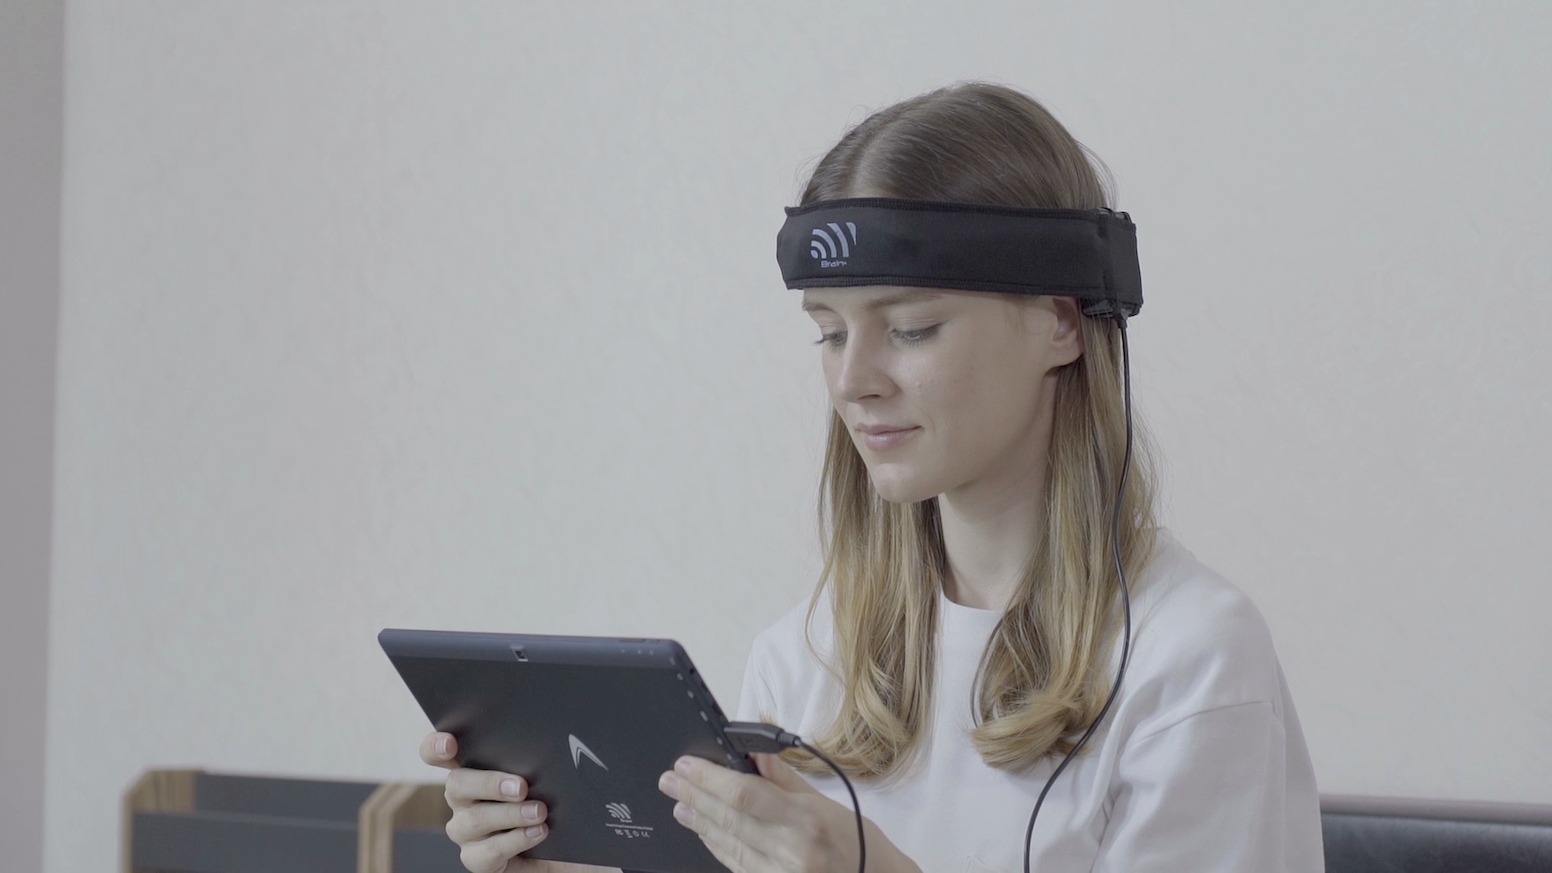 EEG device train your brain to unleash underlying power of Concentration, Relaxation and Memory.